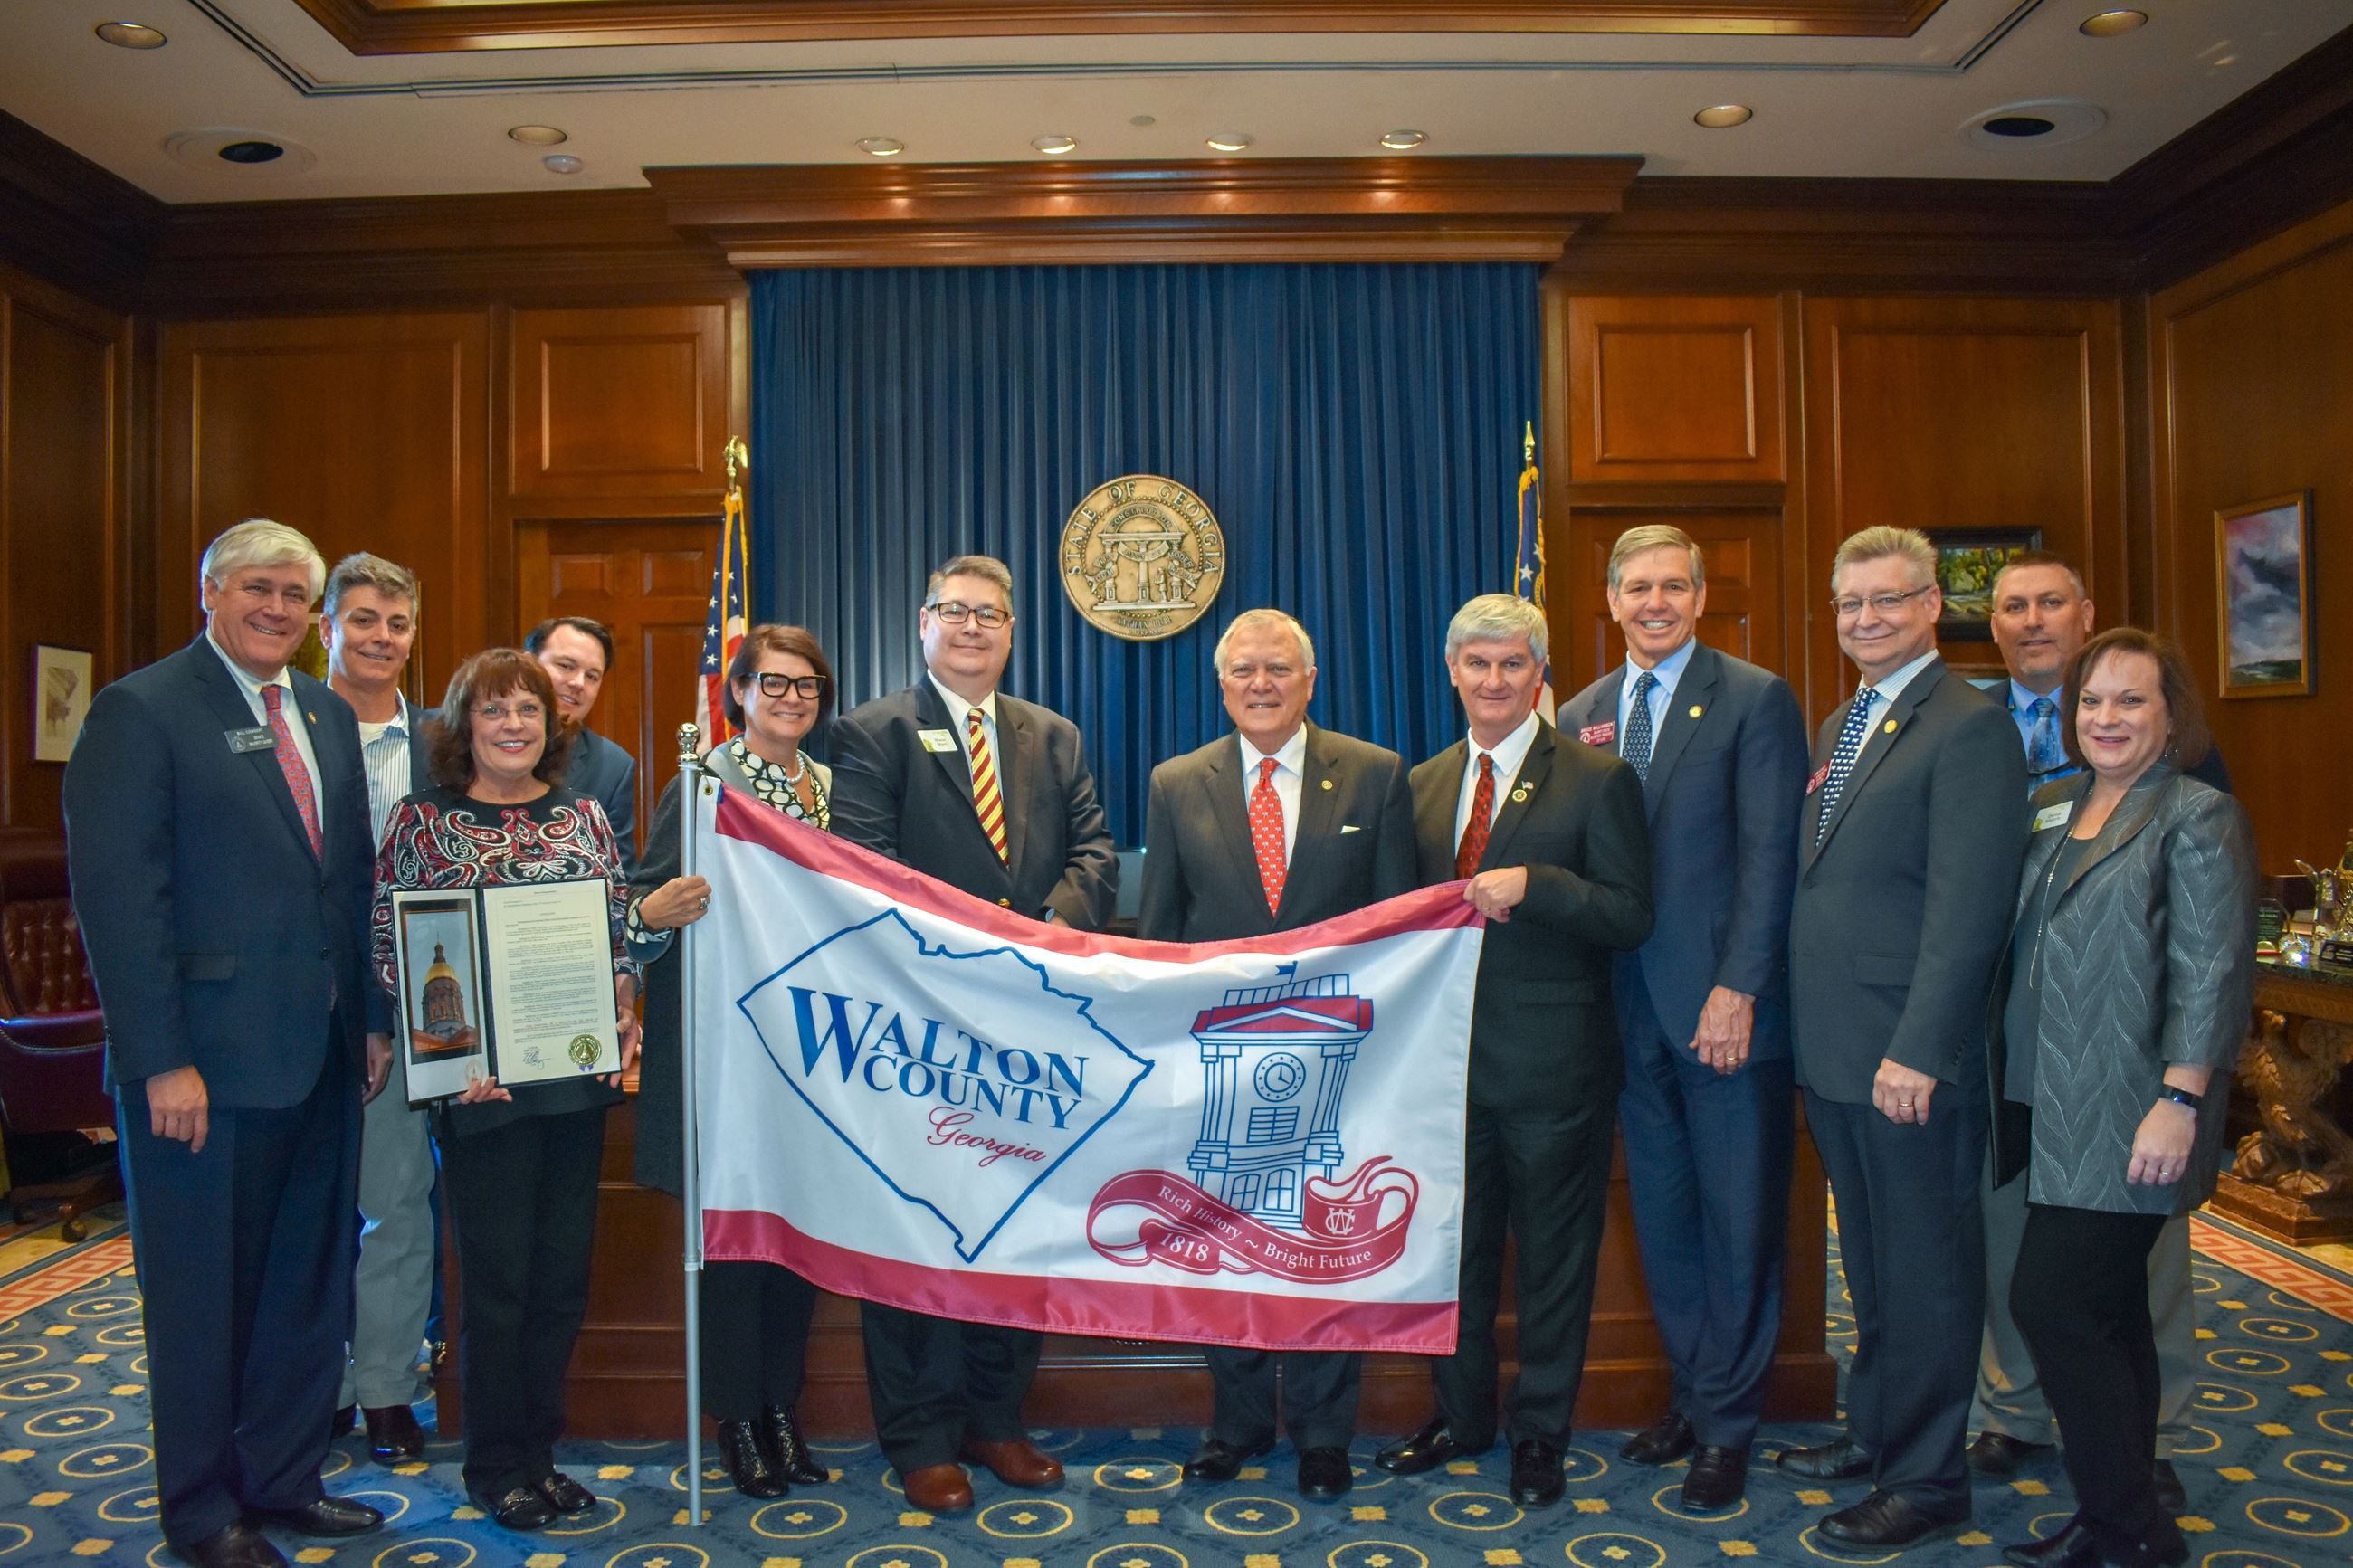 Government officials displaying Walton County Flag